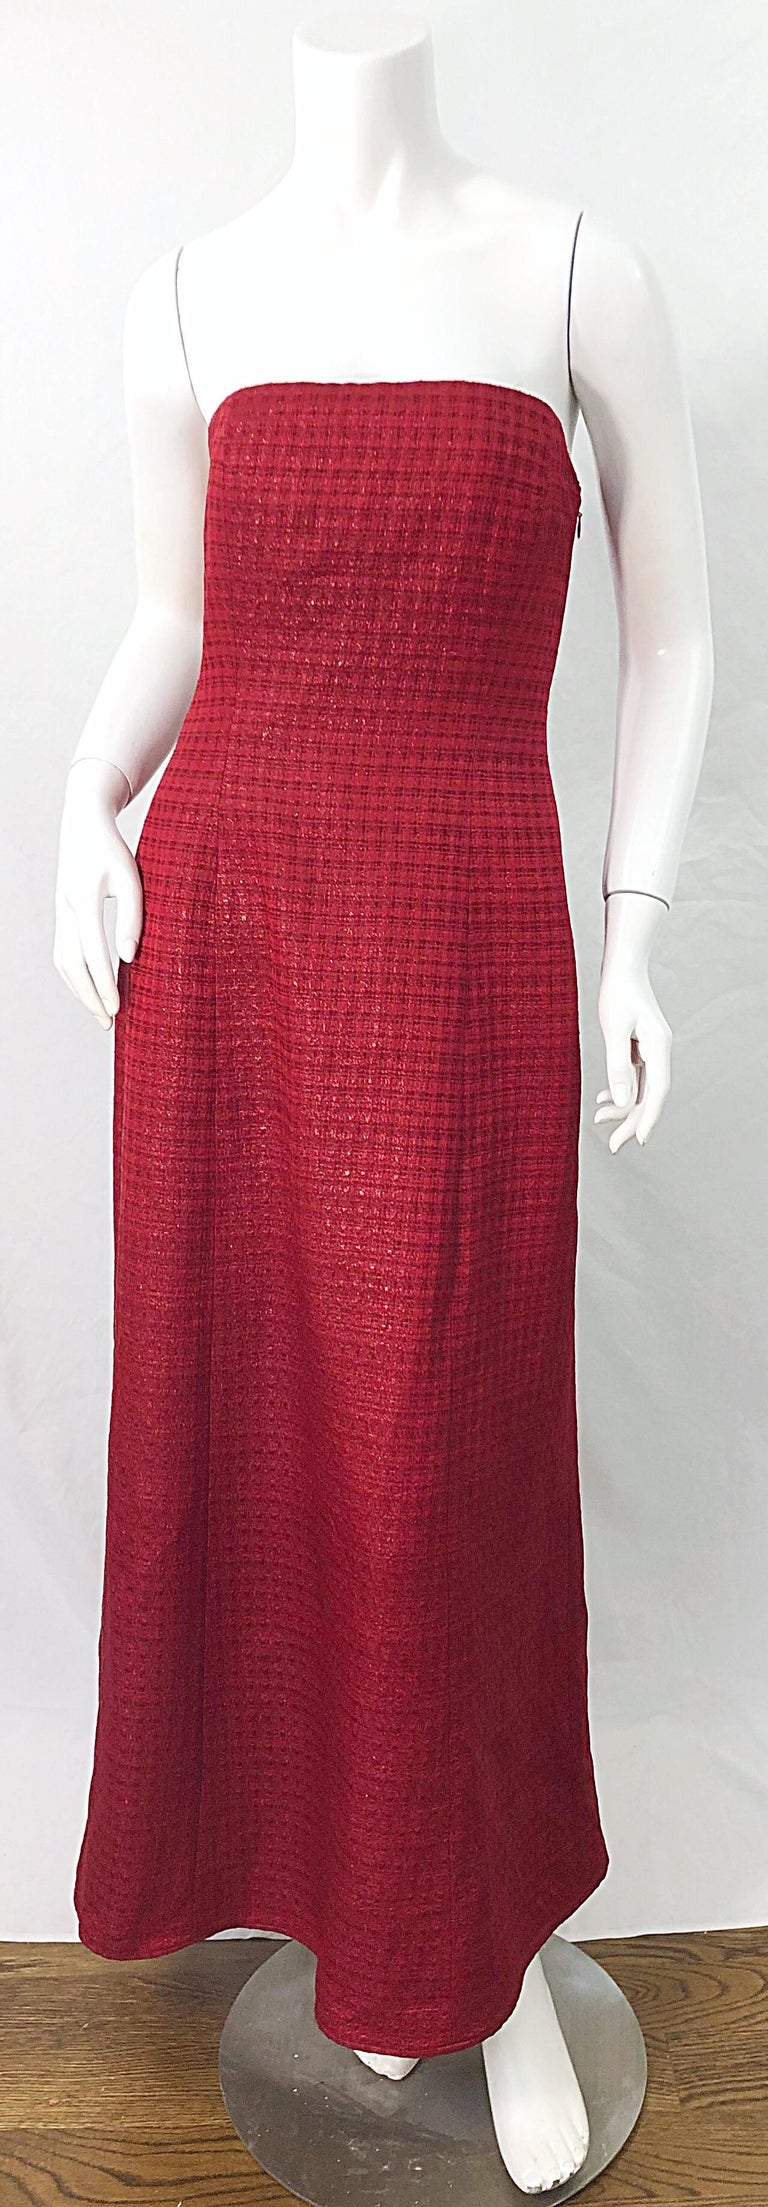 1990s Louis Feraud Cranberry Red Strapless Vintage 90s Silk + Wool Gown Dress For Sale 8